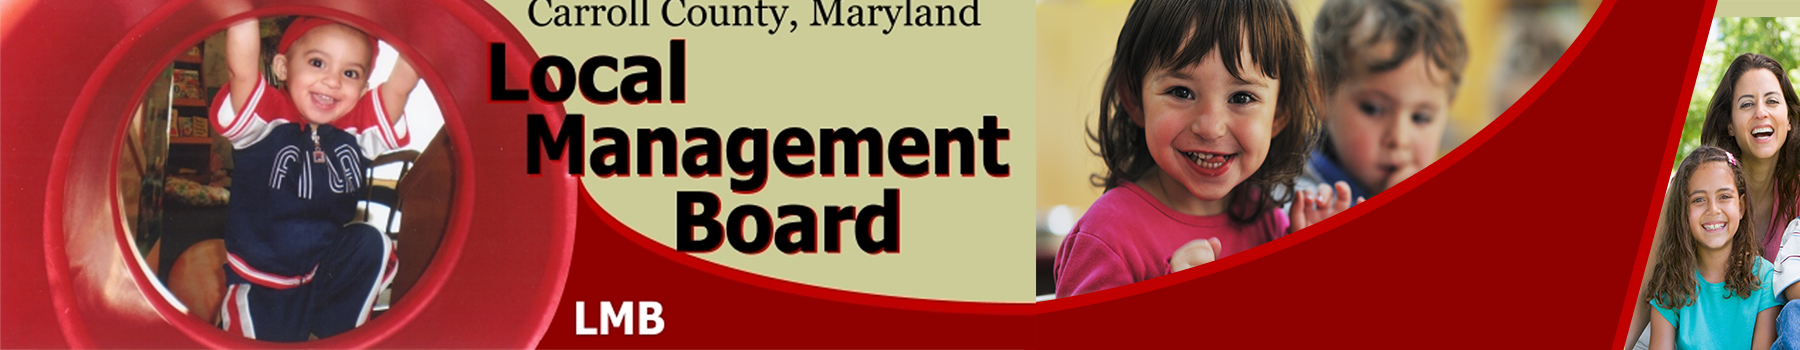 Carroll County Local Management Board Membership